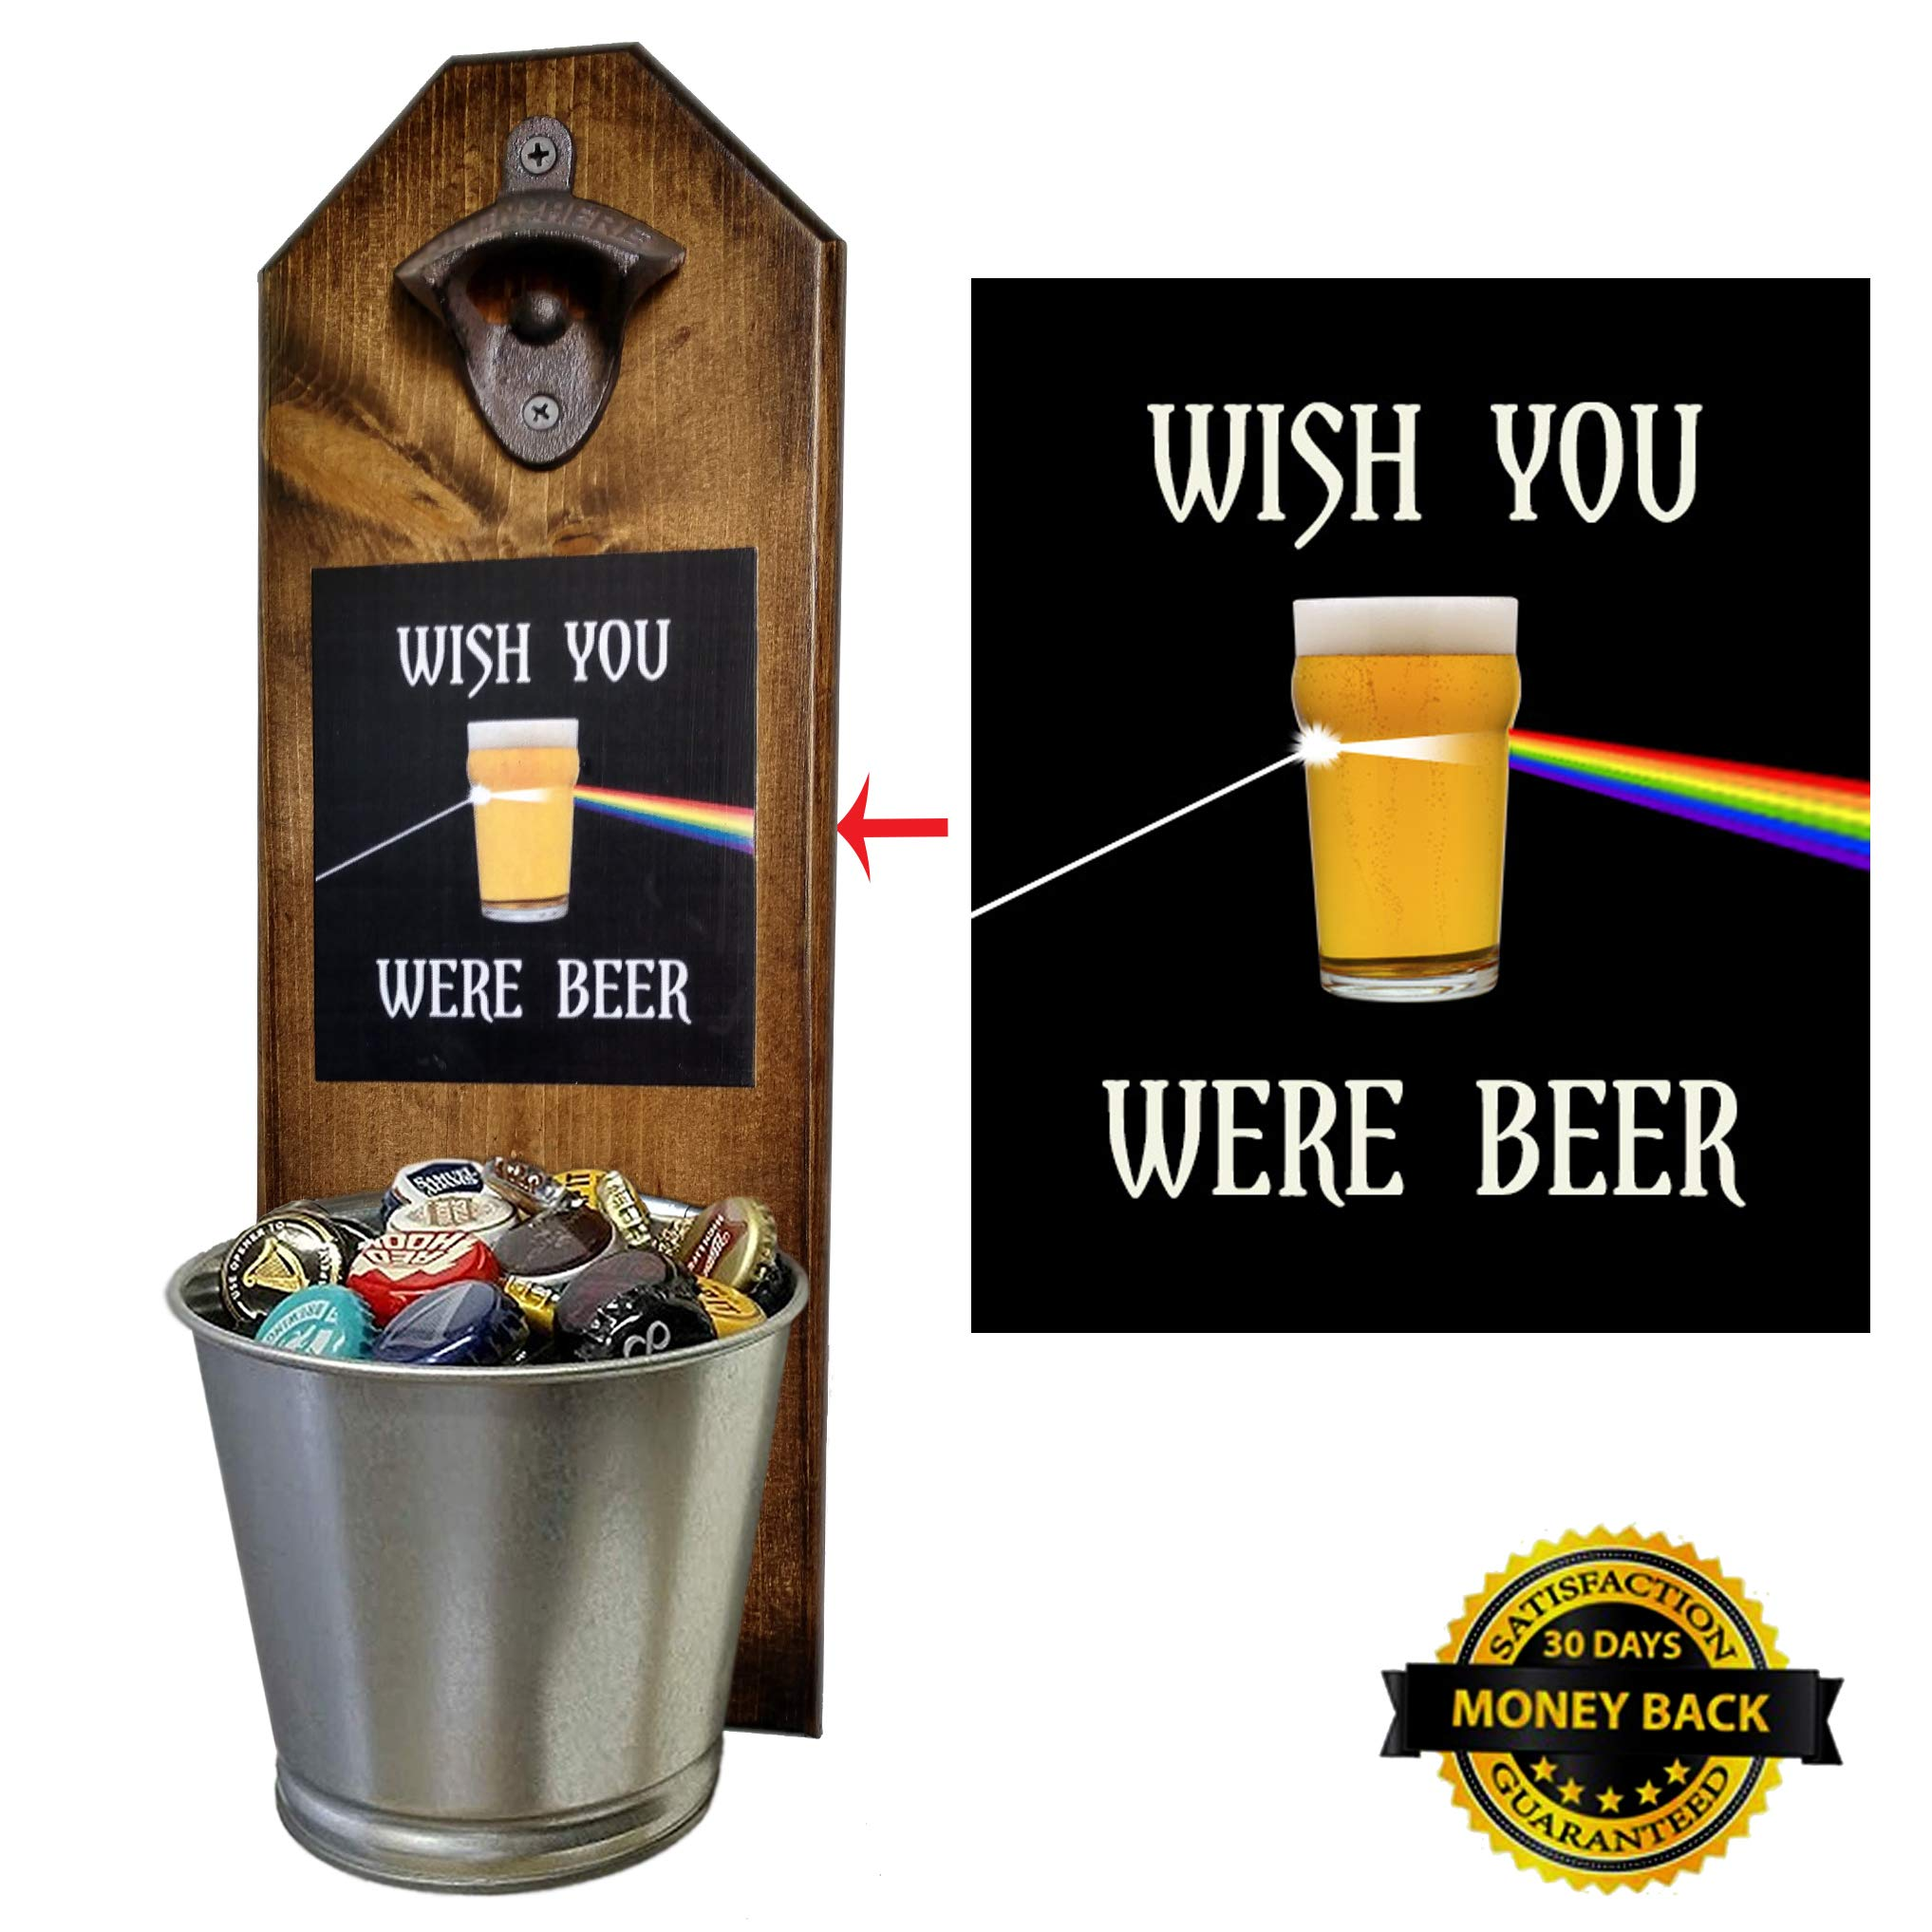 ''Wish You Were Beer'' - Pink Floyd Inspired - Bottle Opener and Cap Catcher - Handcrafted by a Vet - 100% Solid Pine 3/4'' Thick - Rustic Cast Iron Bottle Opener and Mini Galvanized Bucket